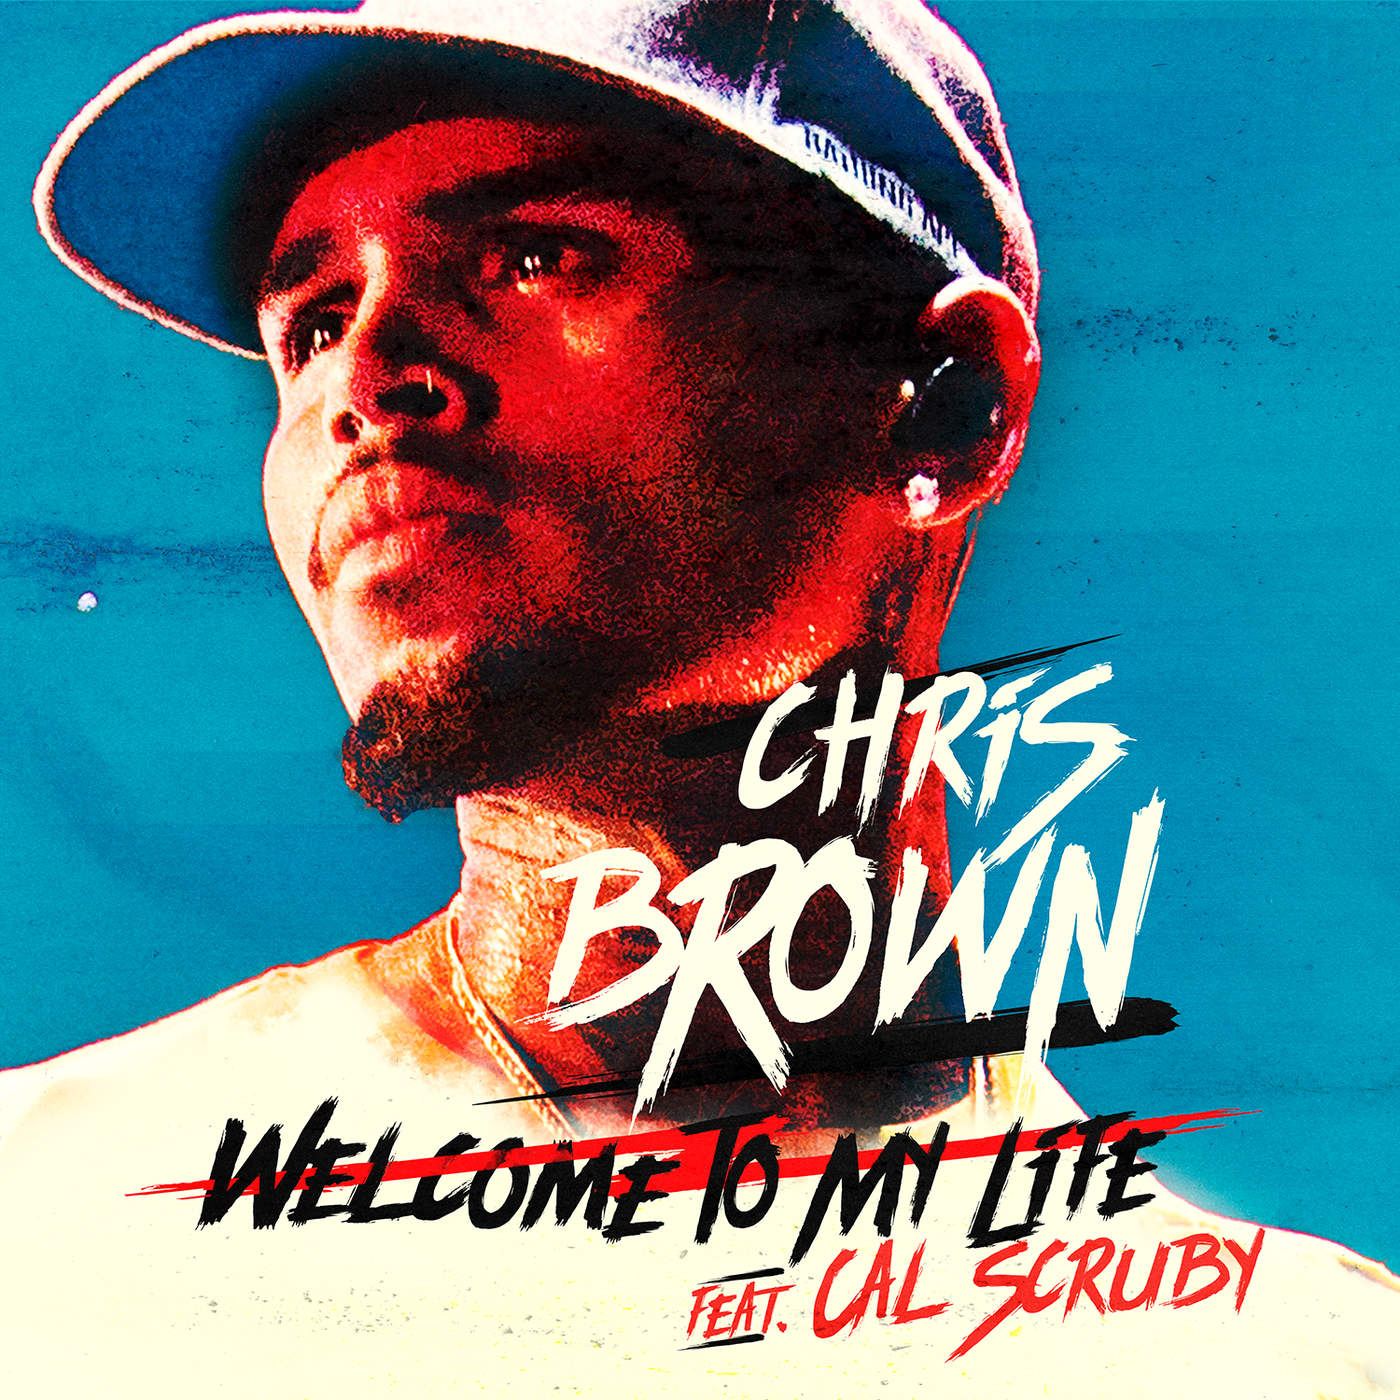 Chris Brown - Welcome to My Life (feat. Cal Scruby) - Single Cover